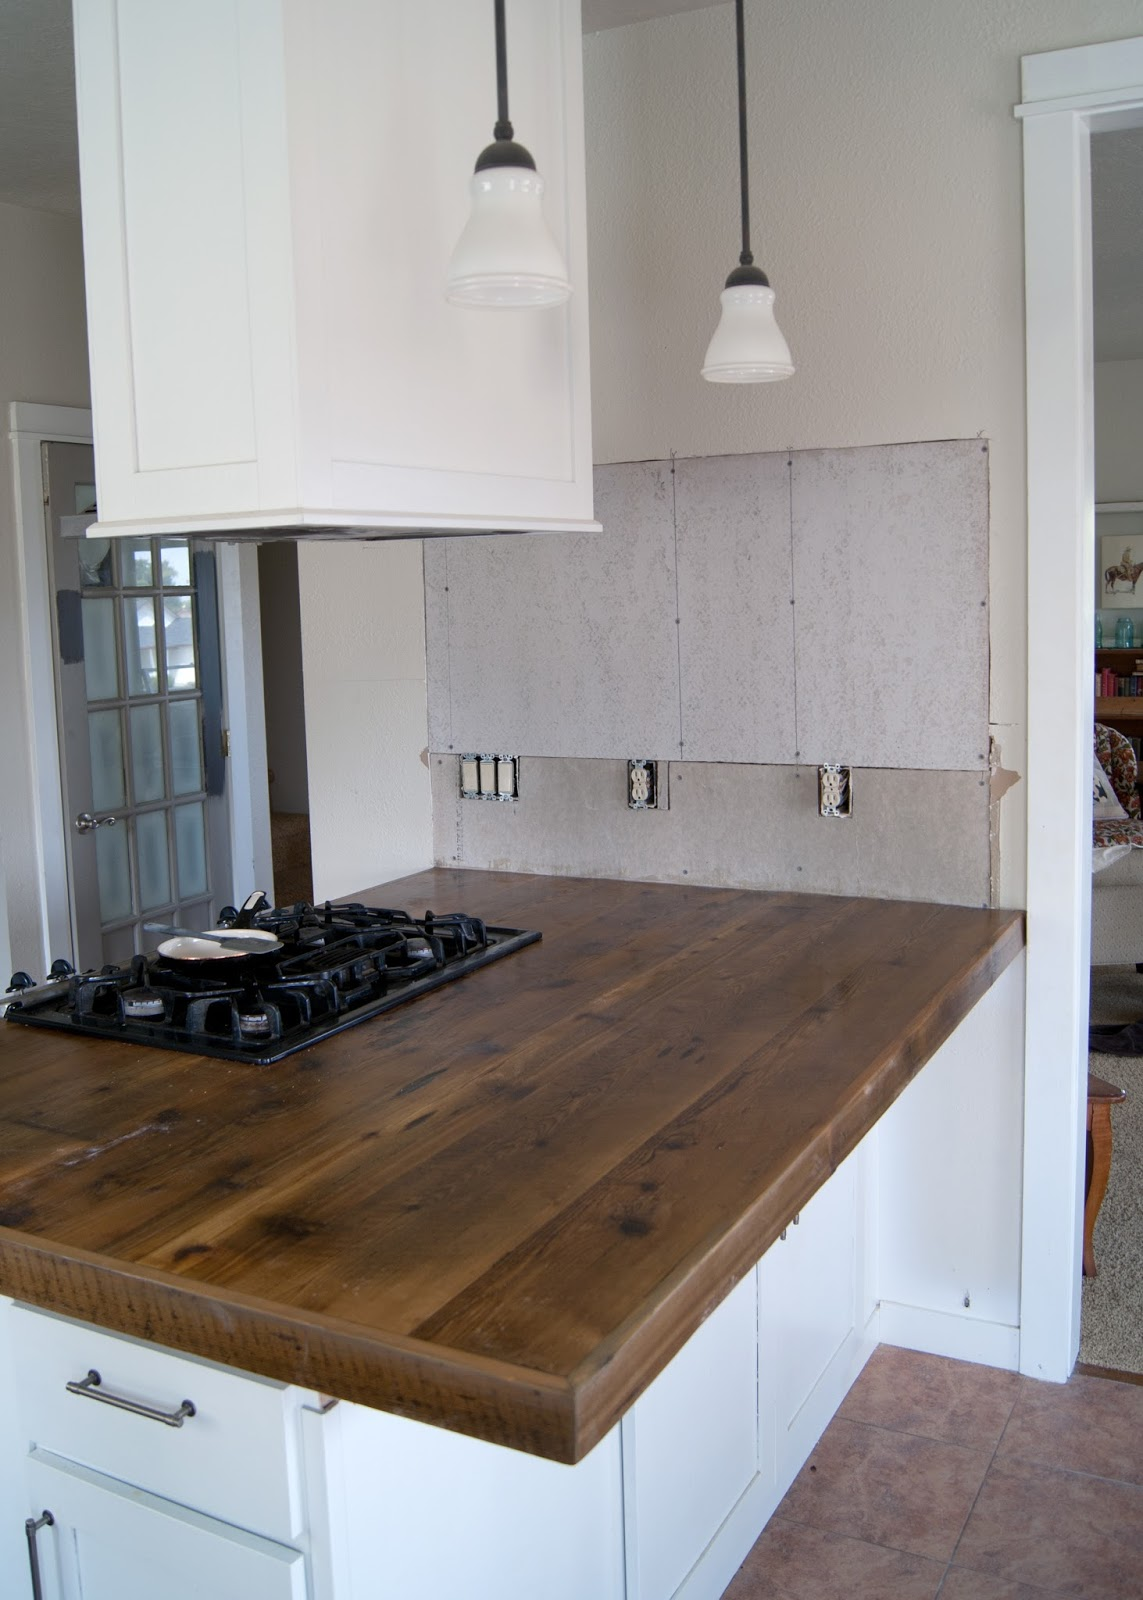 DIY Reclaimed Wood Countertop | Averie Lane: DIY Reclaimed ...